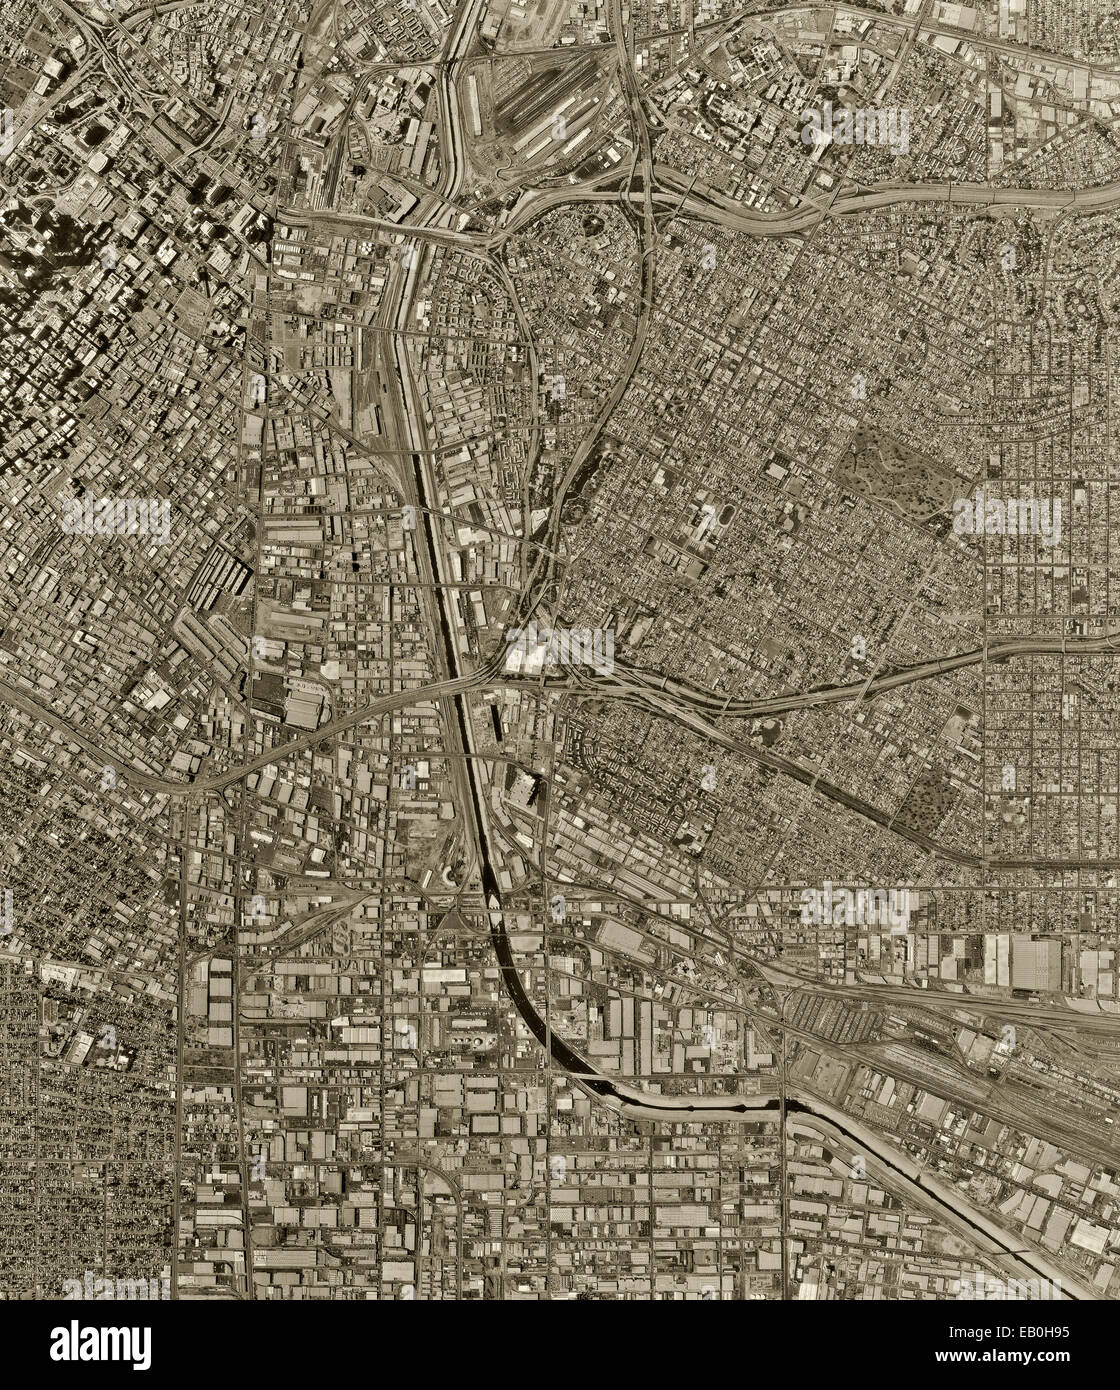 historical aerial photograph Los Angeles, California, 1994 - Stock Image